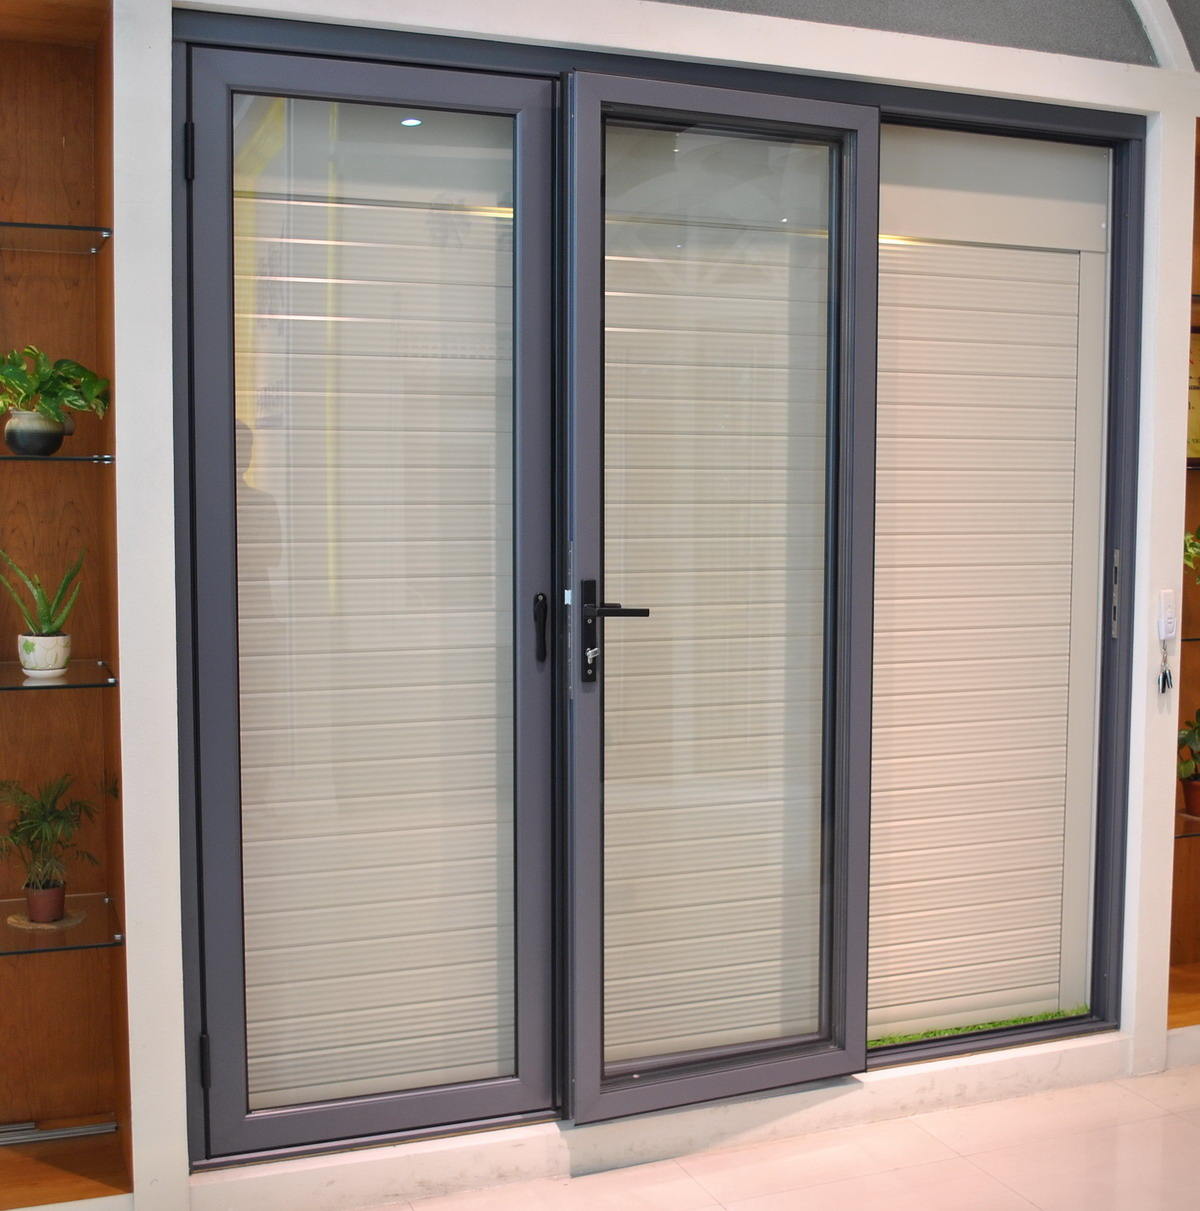 Breathtaking sliding patio doors for sale second hand for Exterior patio doors for sale